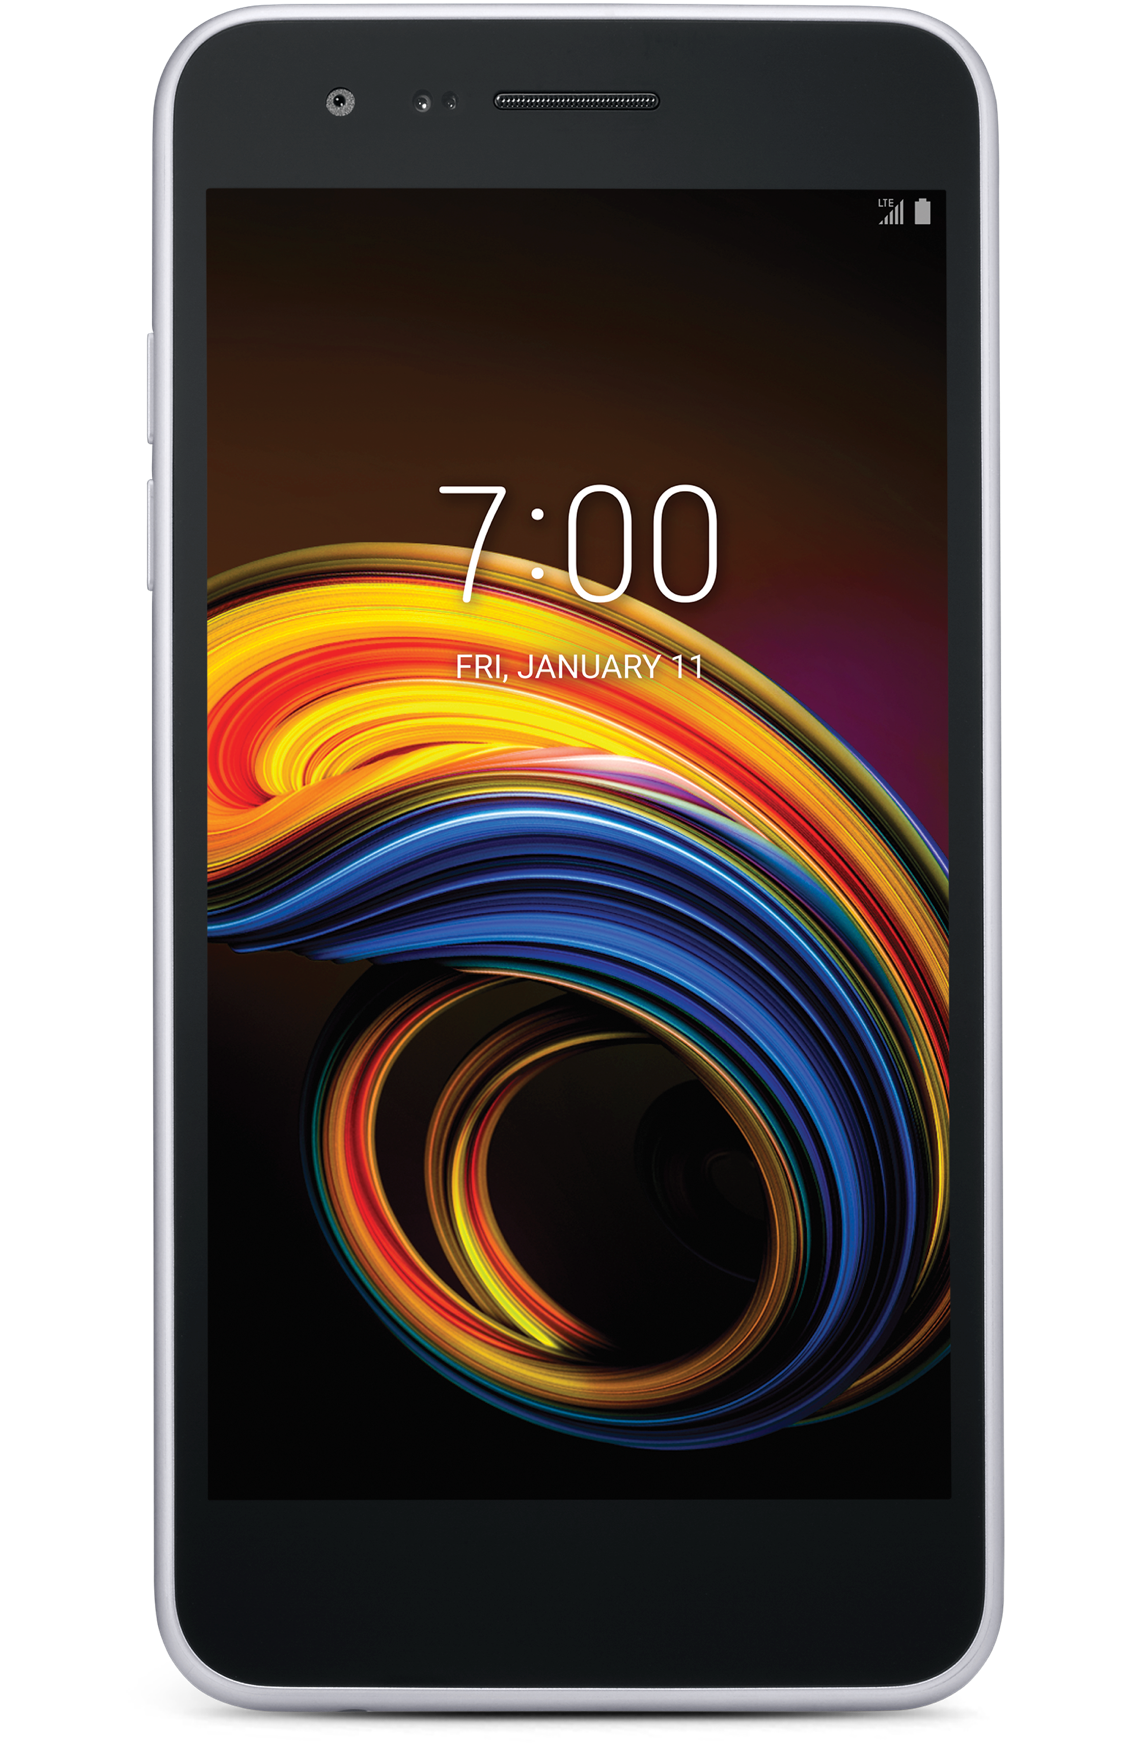 LG Tribute Empire - Features, Specs, and Reviews | Boost Mobile